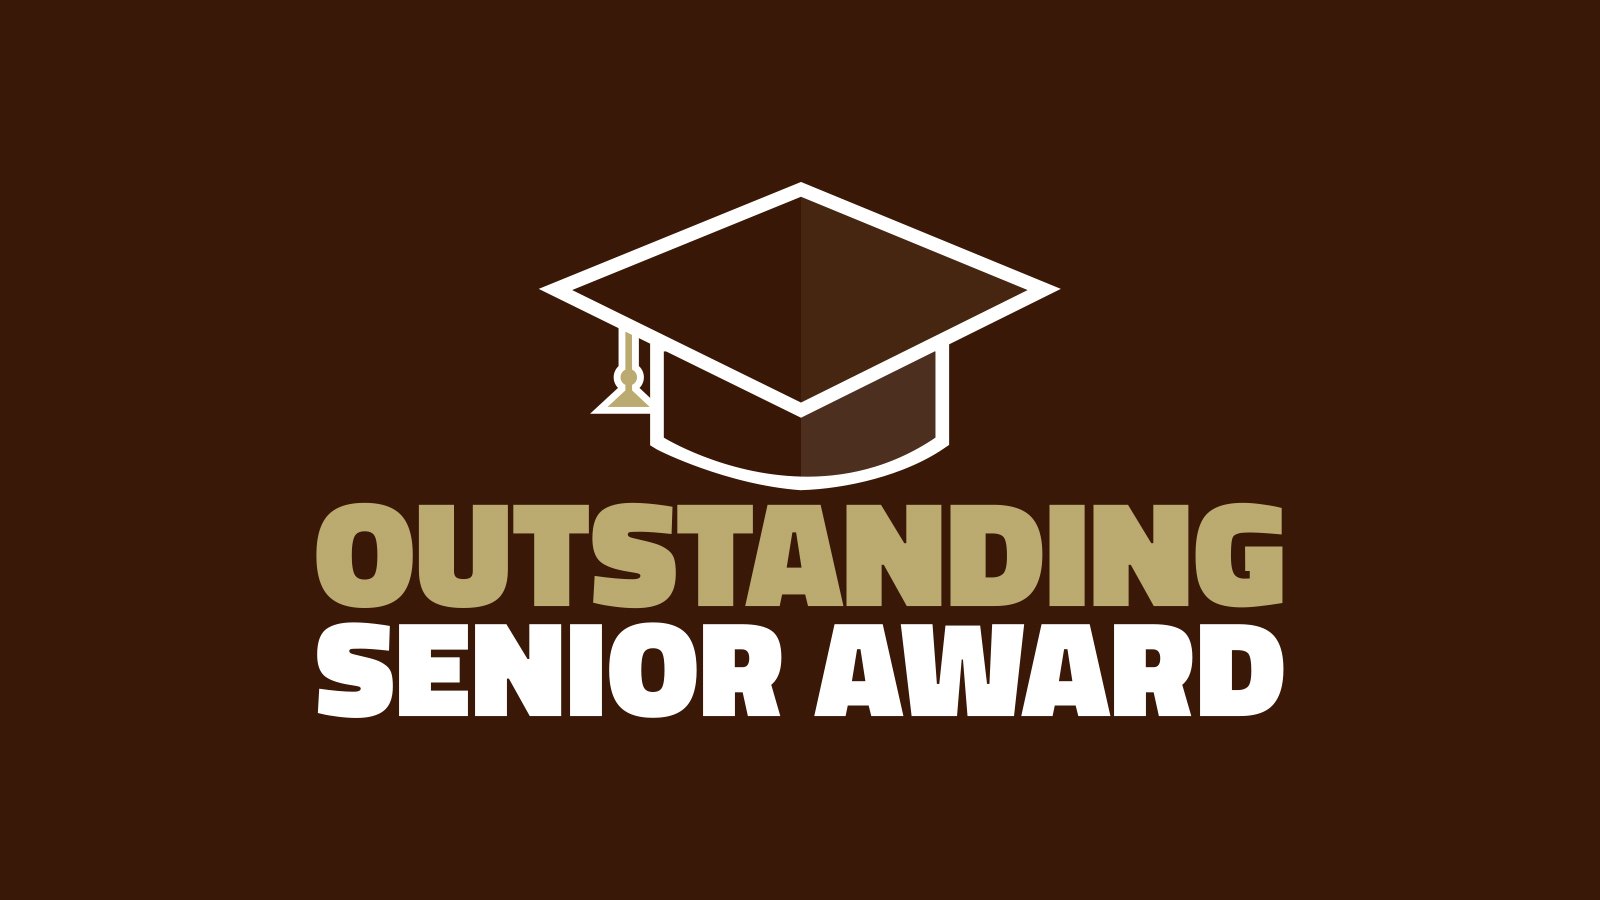 2020 Outstanding Senior Award Announcement